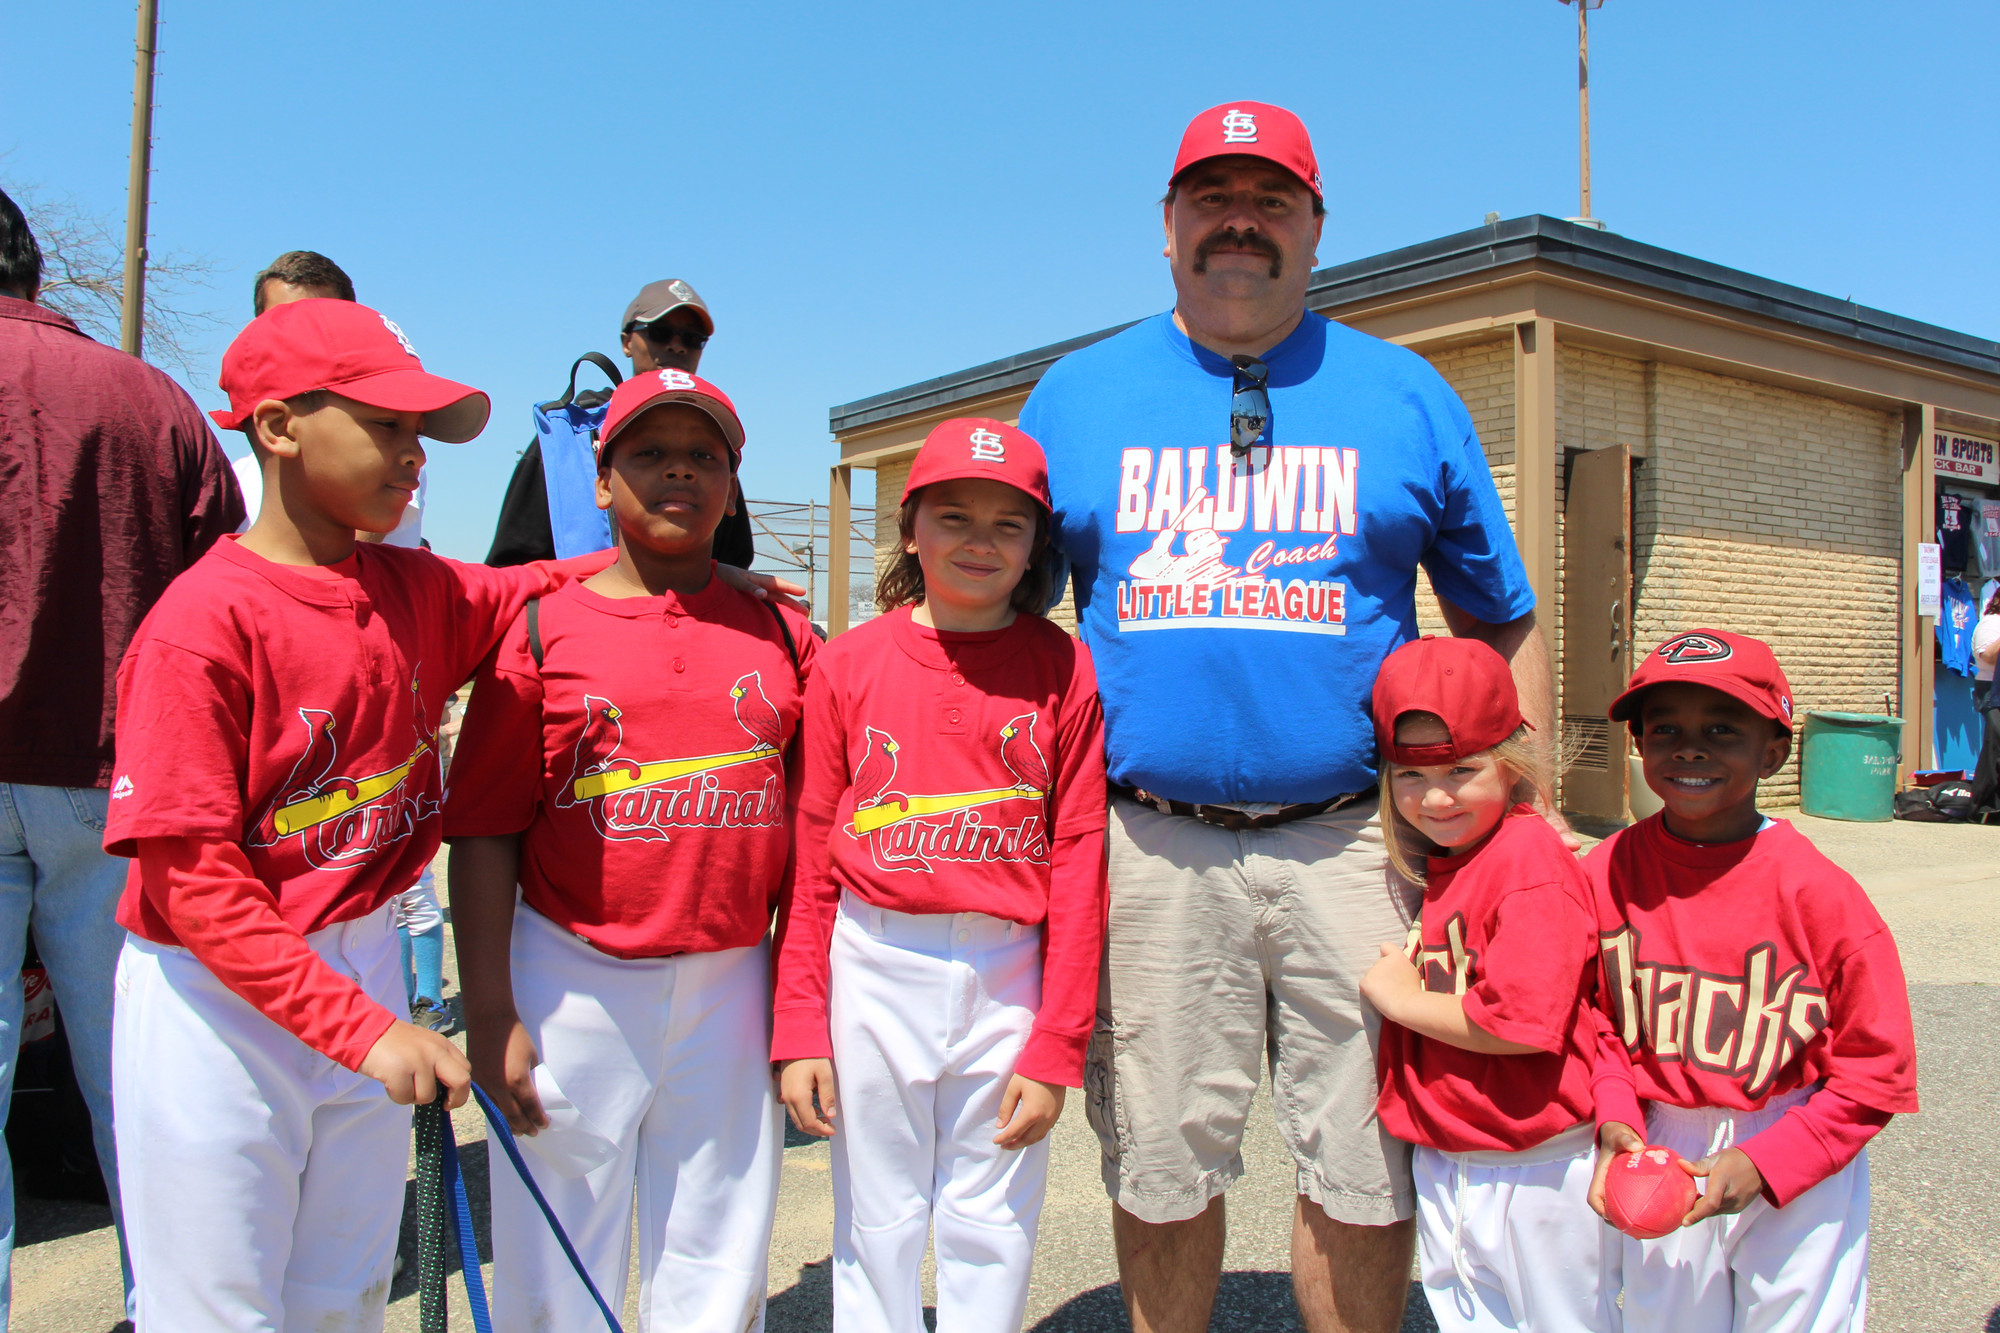 Coach Bill Dworsak of the Cardinals posed with some of the little league players. From left were Cameron Payton, 10, Rodney Dartois, 10, Jesse Dworsak, cardinals, 10, Briana Dworsak, 4, Darius Nelson, 5.